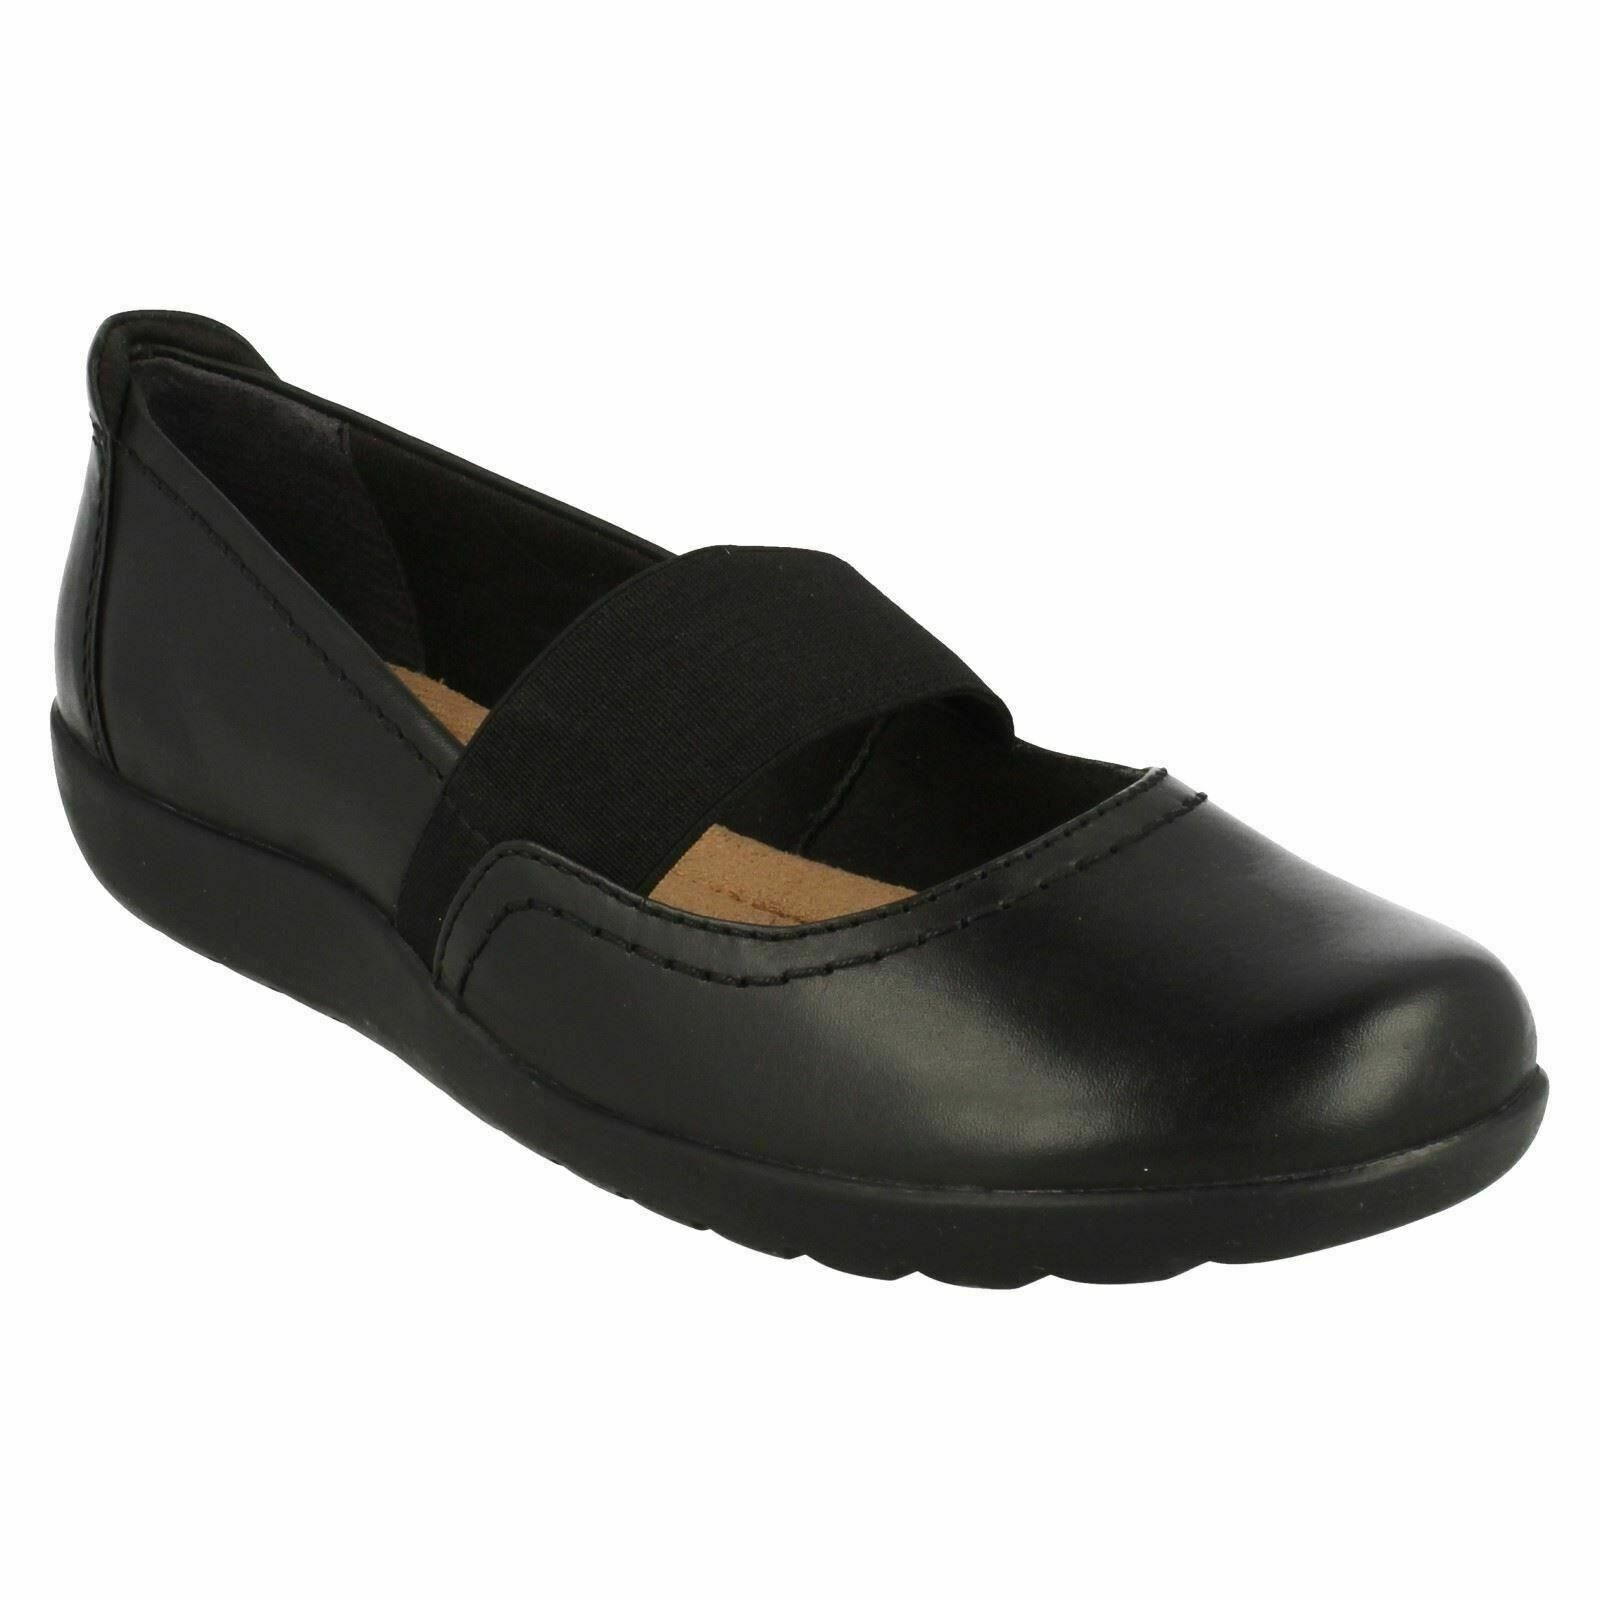 MEDORA ALLY LADIES CLARKS LEATHER MARY JANE CASUAL ELASTICATED STRAP FLAT schuhe